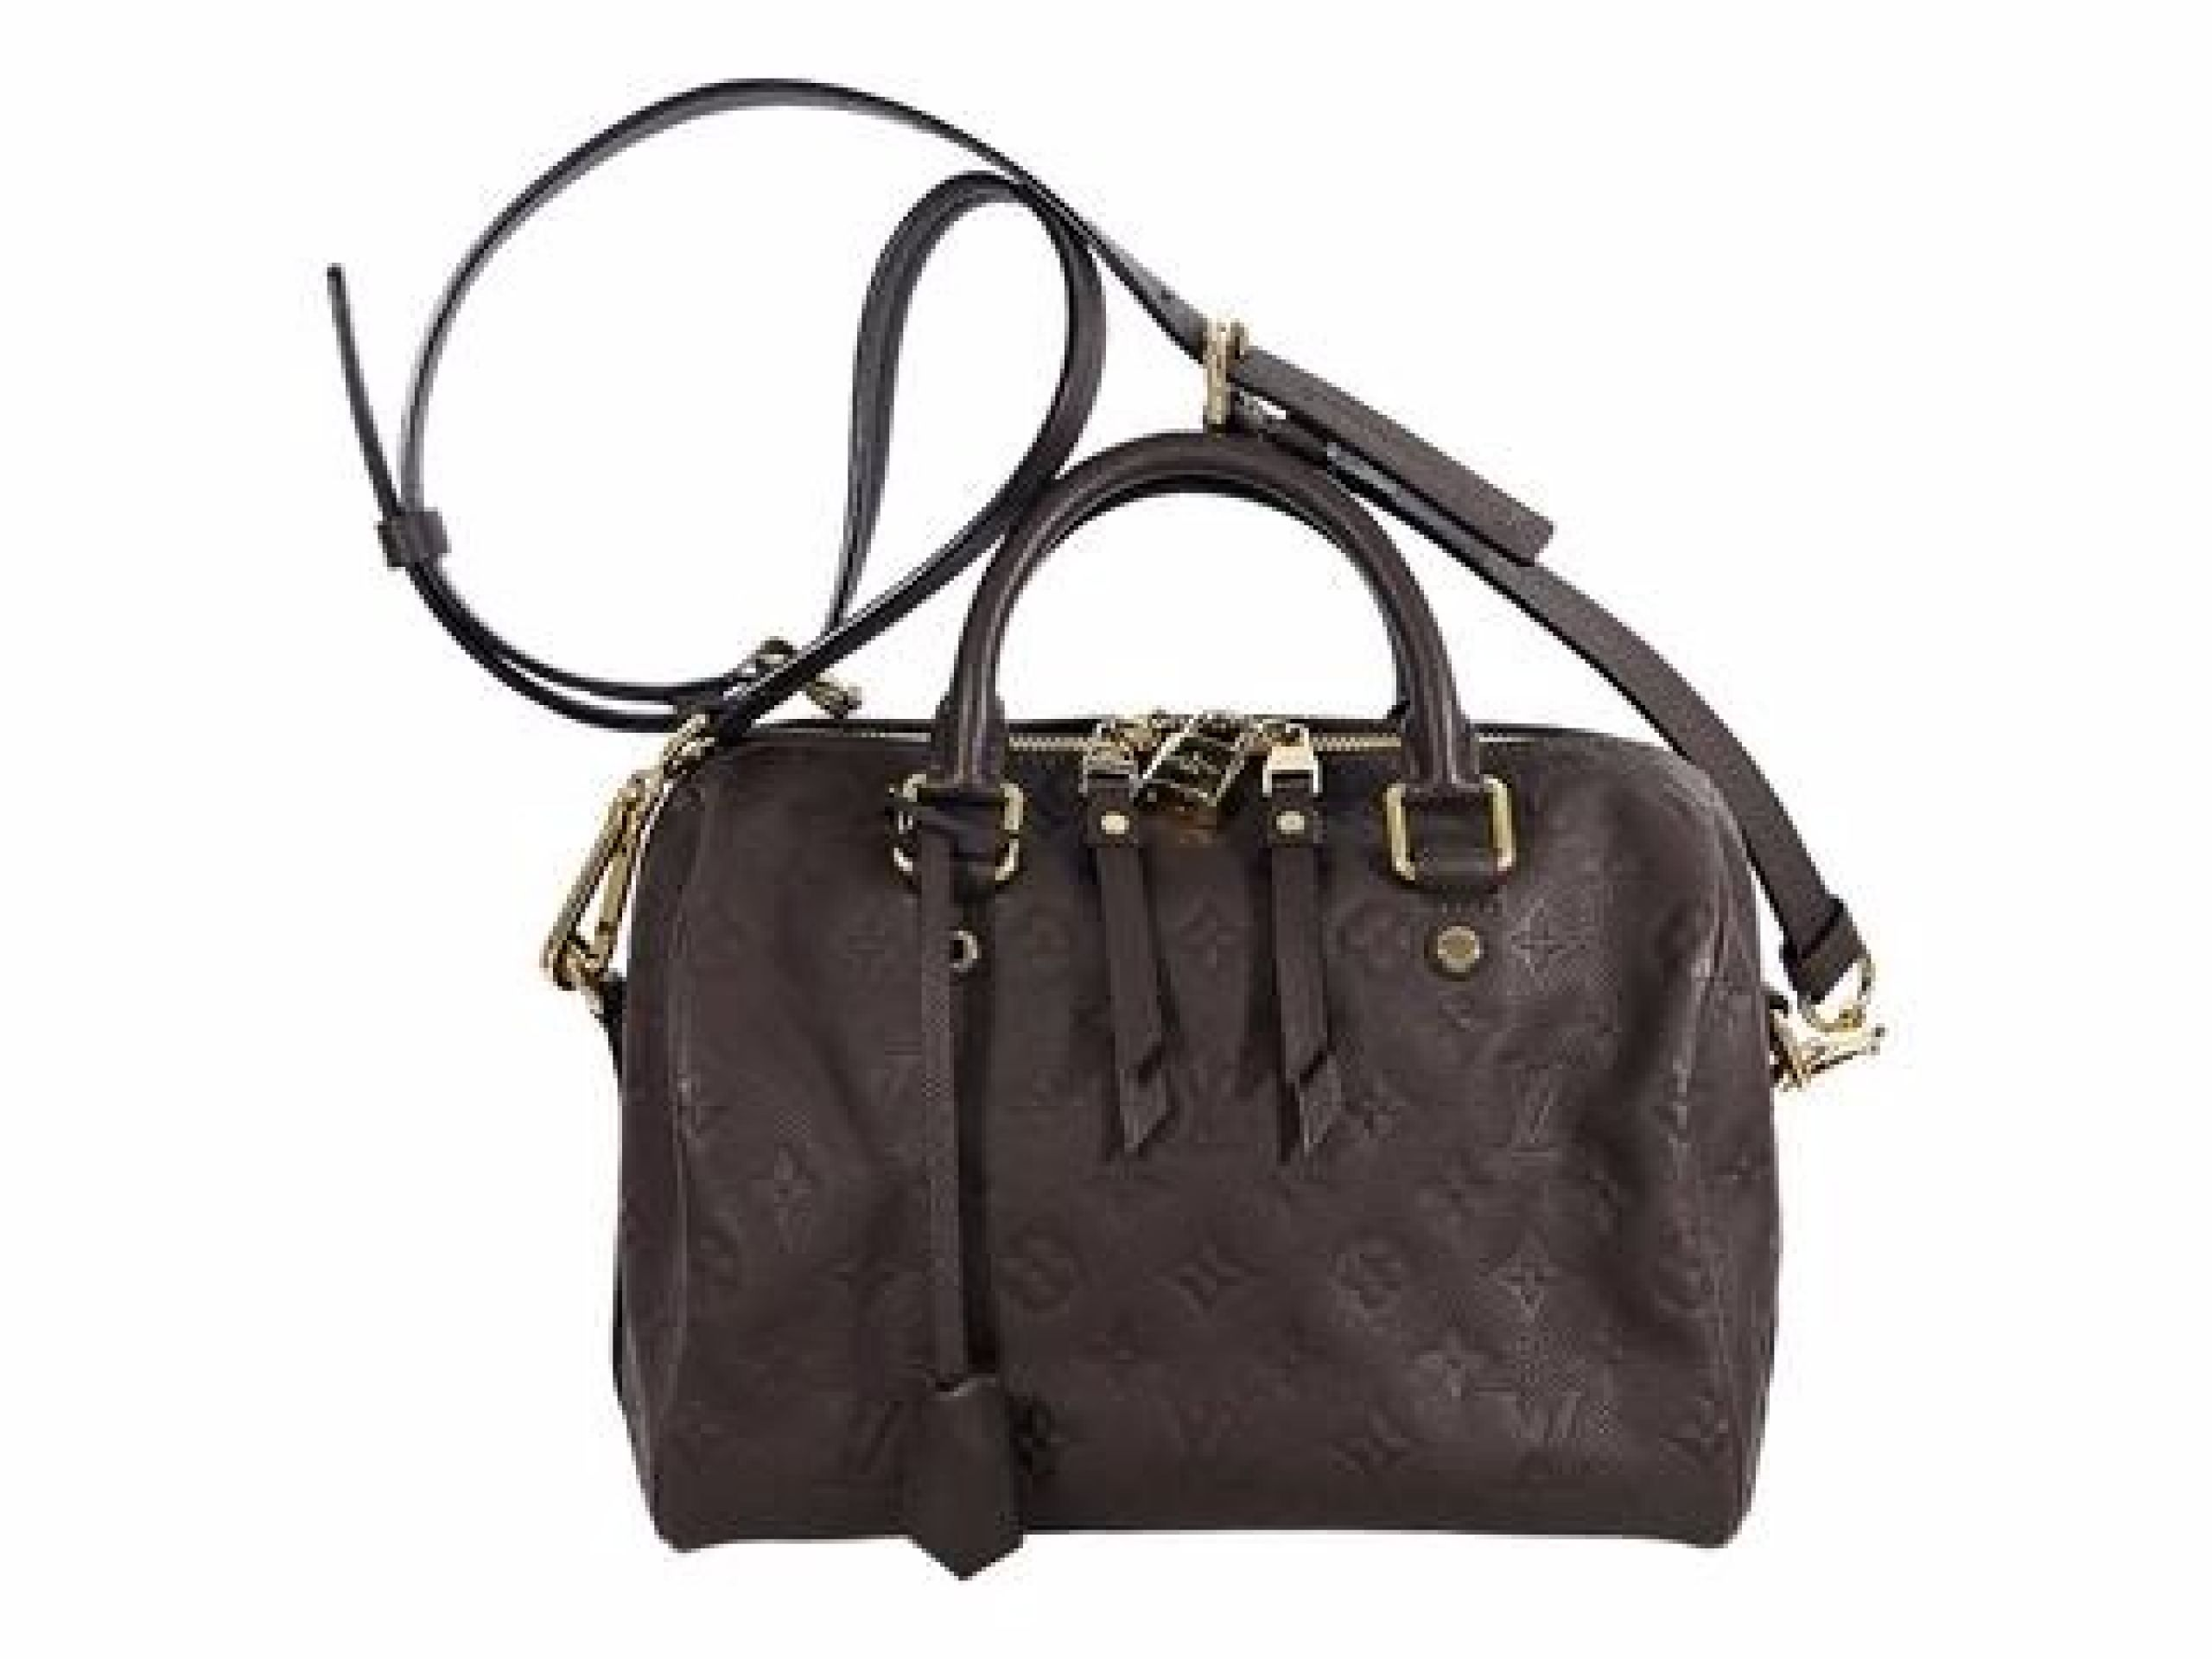 Brown Louis Vuitton Empreinte Speedy 25 Bag